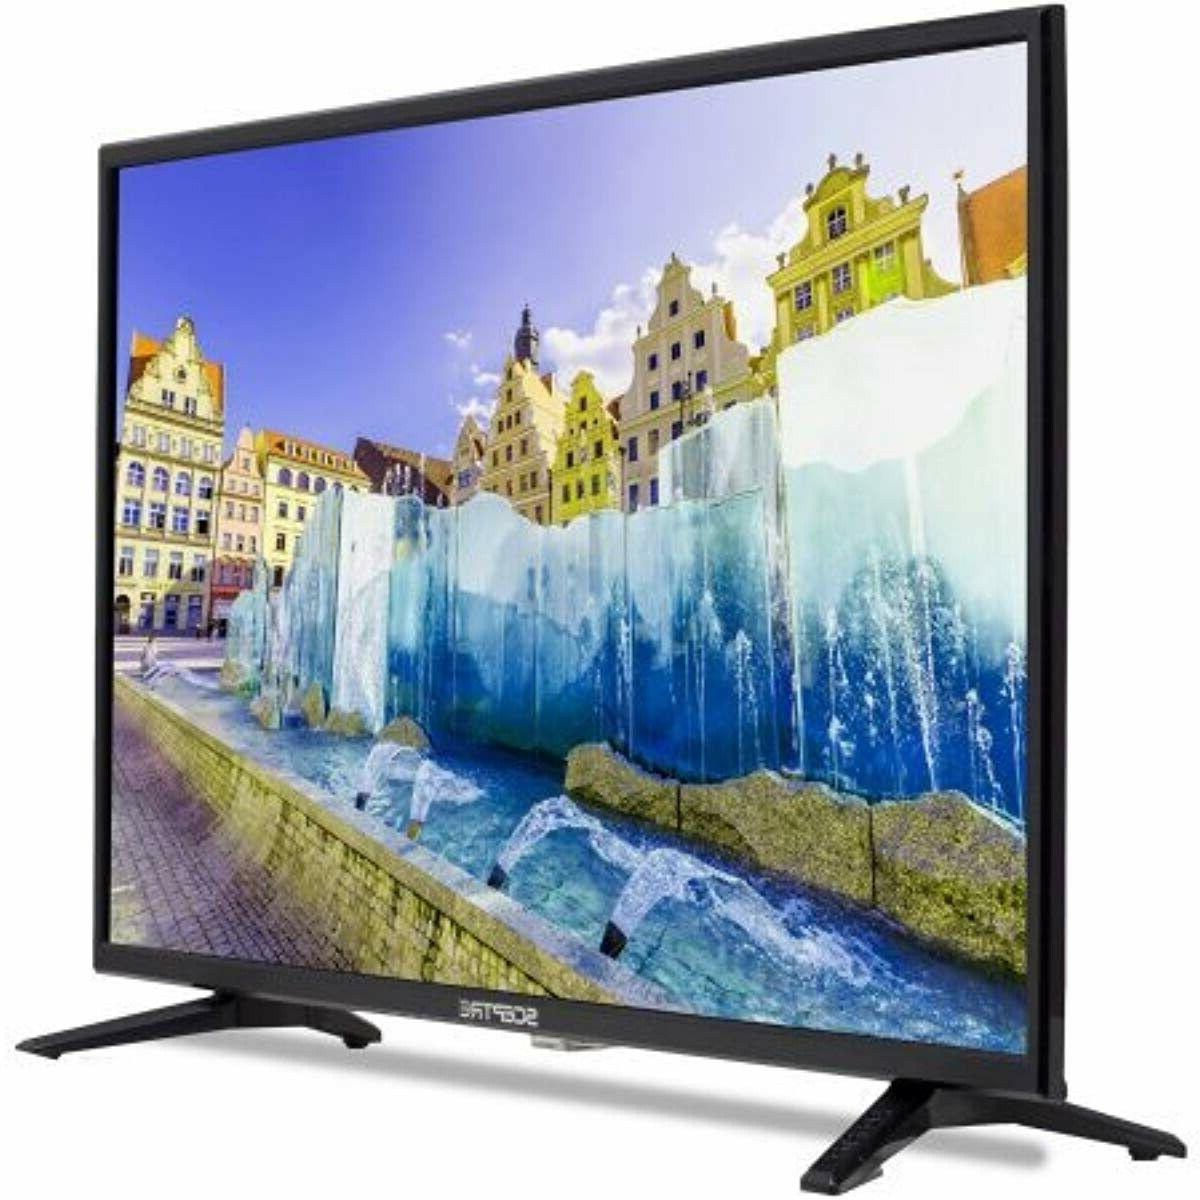 "Home 32"" LED TV BY Dreamsales"